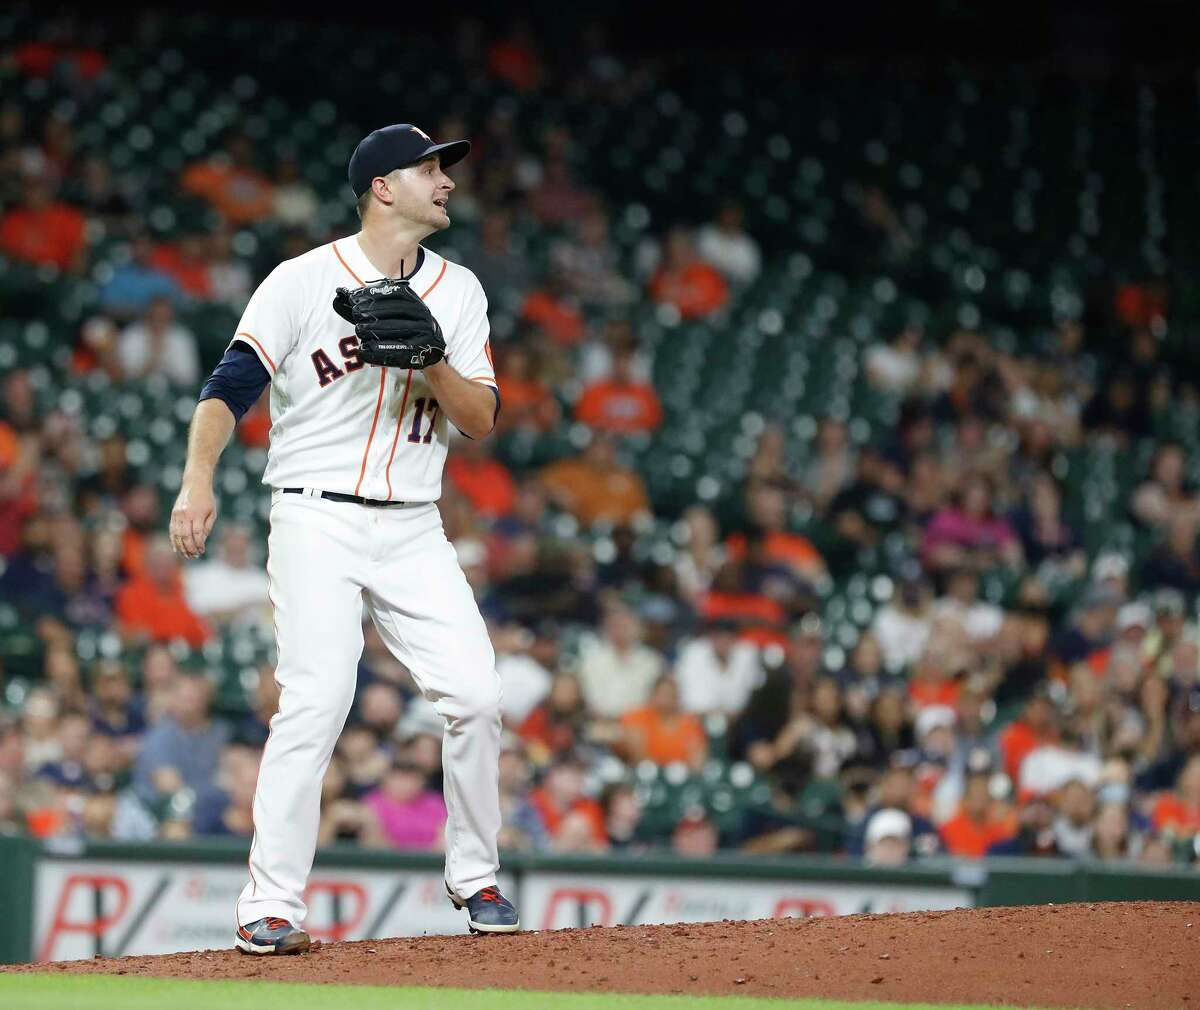 Houston Astros starting pitcher Jake Odorizzi watches Seattle Mariners J.P. Crawford's RBI double during the fifth inning of an MLB baseball game at Minute Maid Park, Tuesday, September 7, 2021, in Houston.